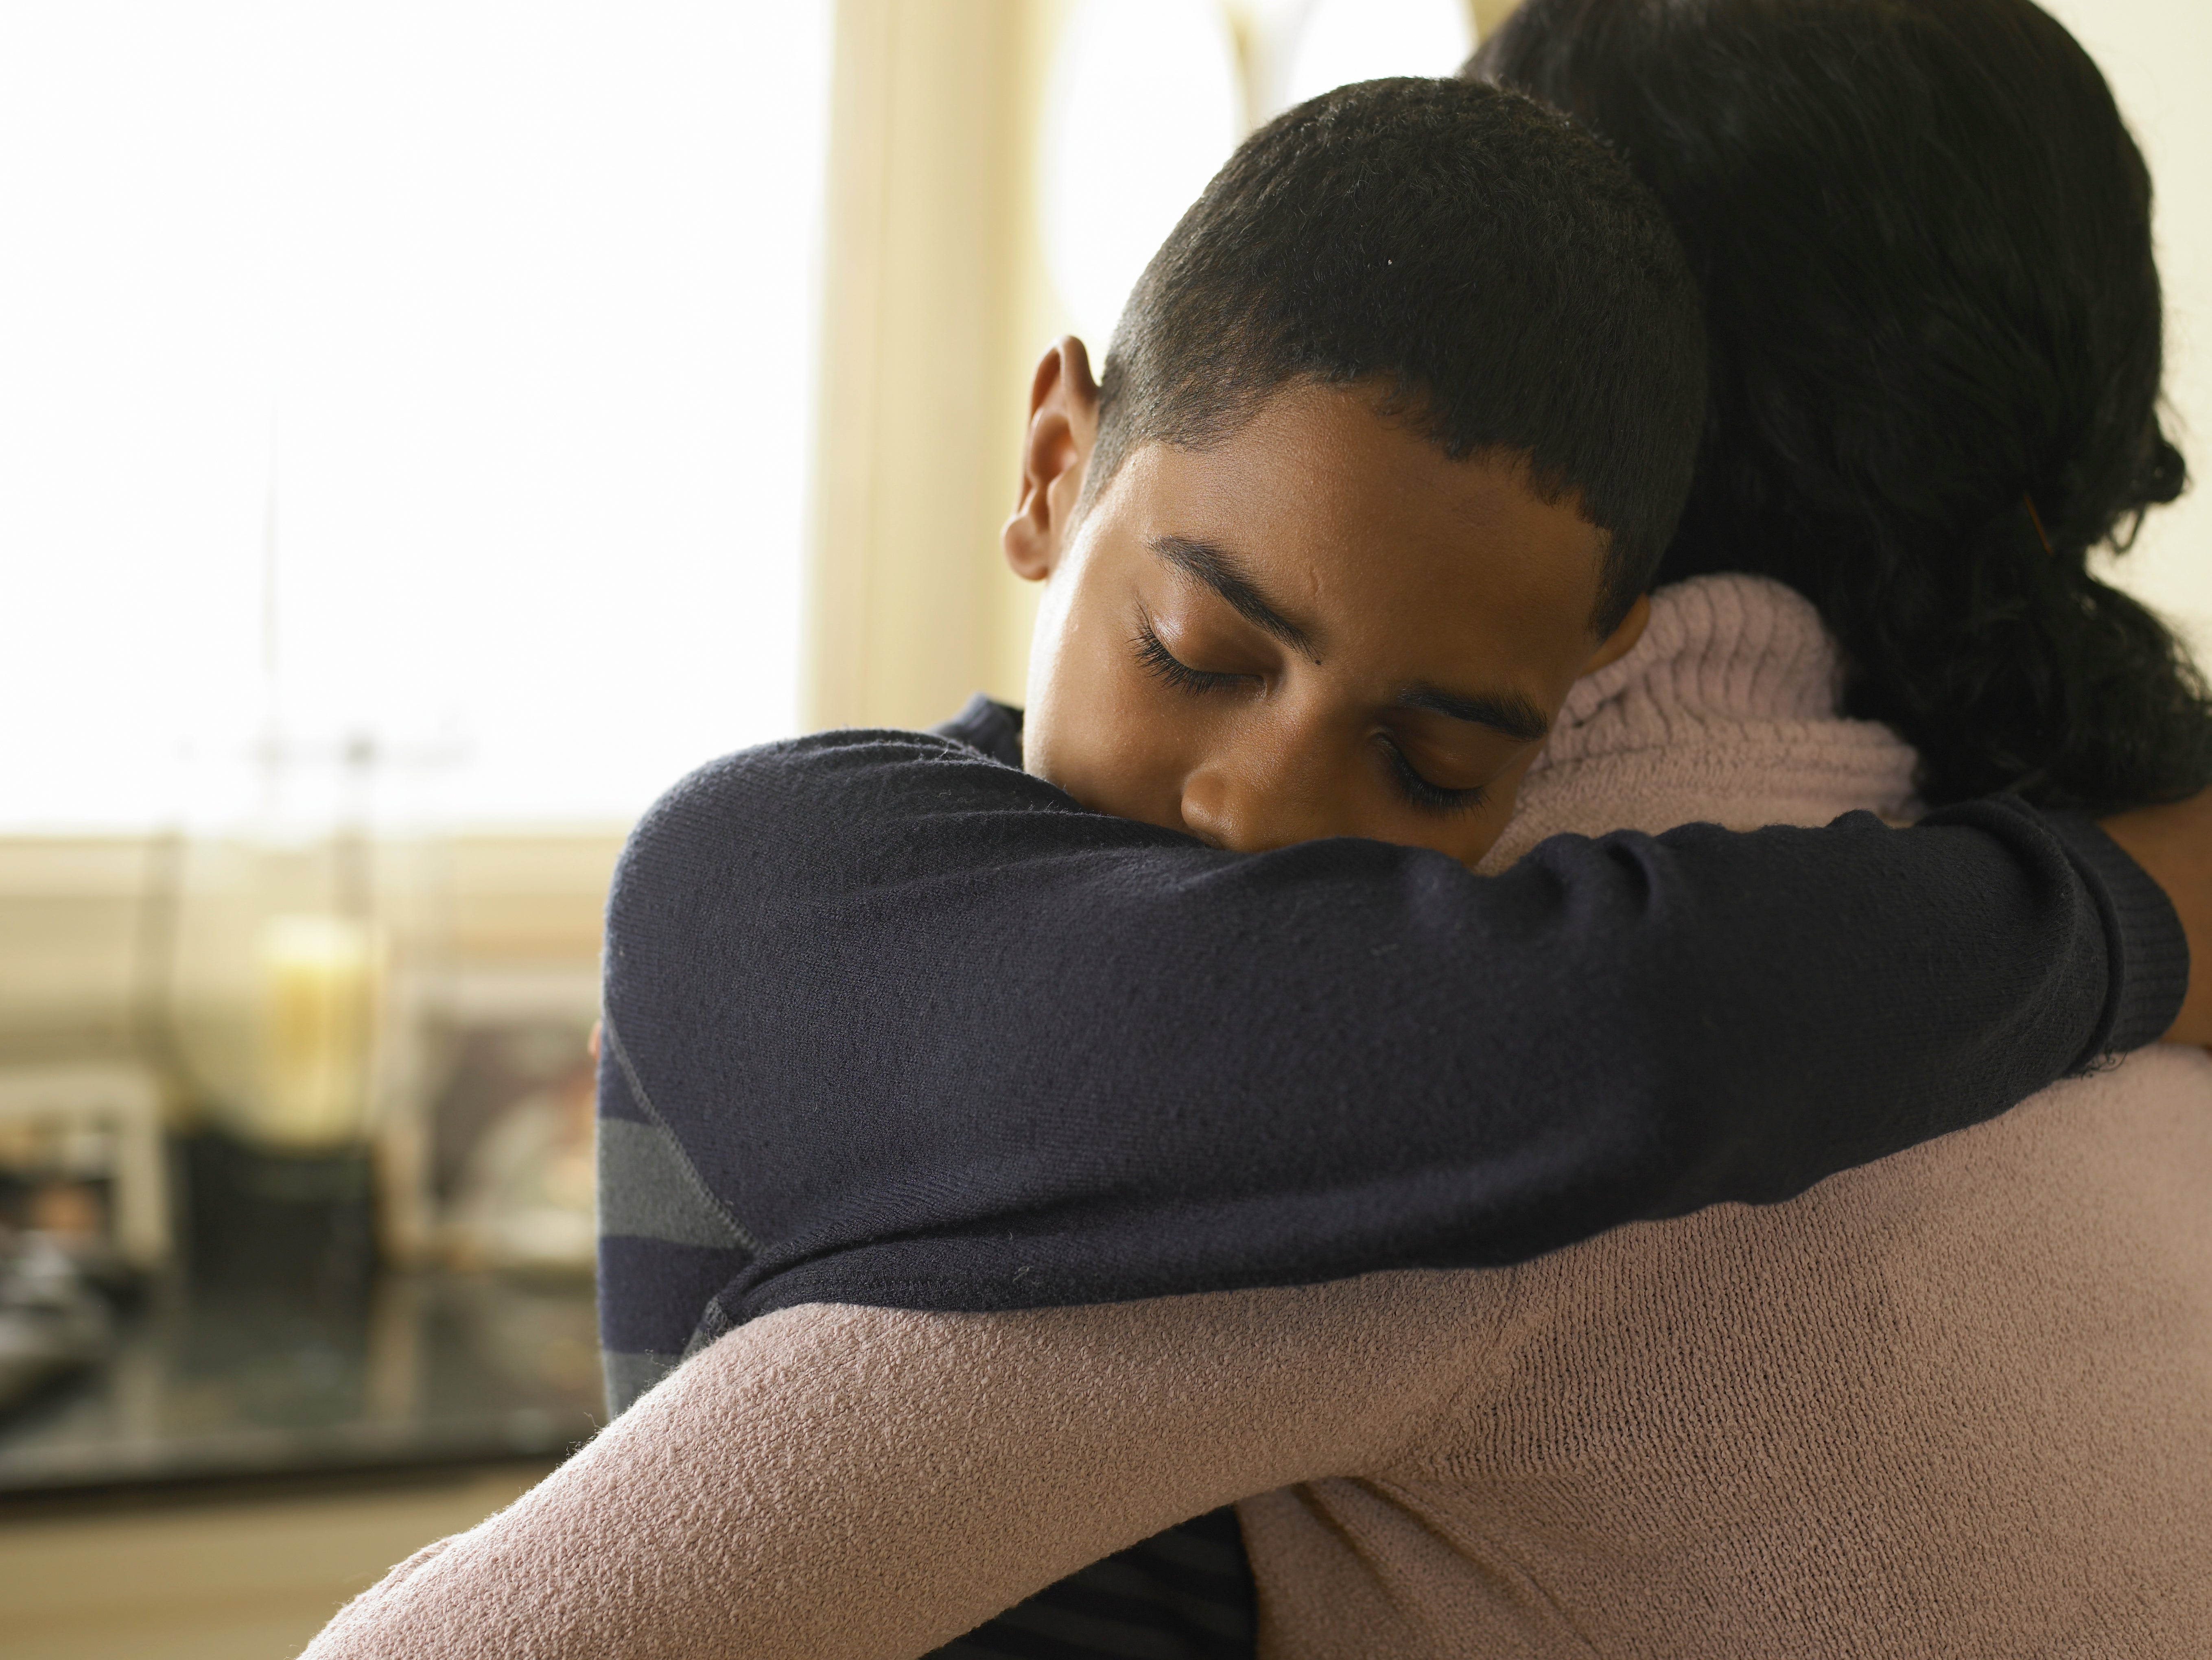 Black Mothers Of LGBTQ Children Need Space To Share Their Experiences